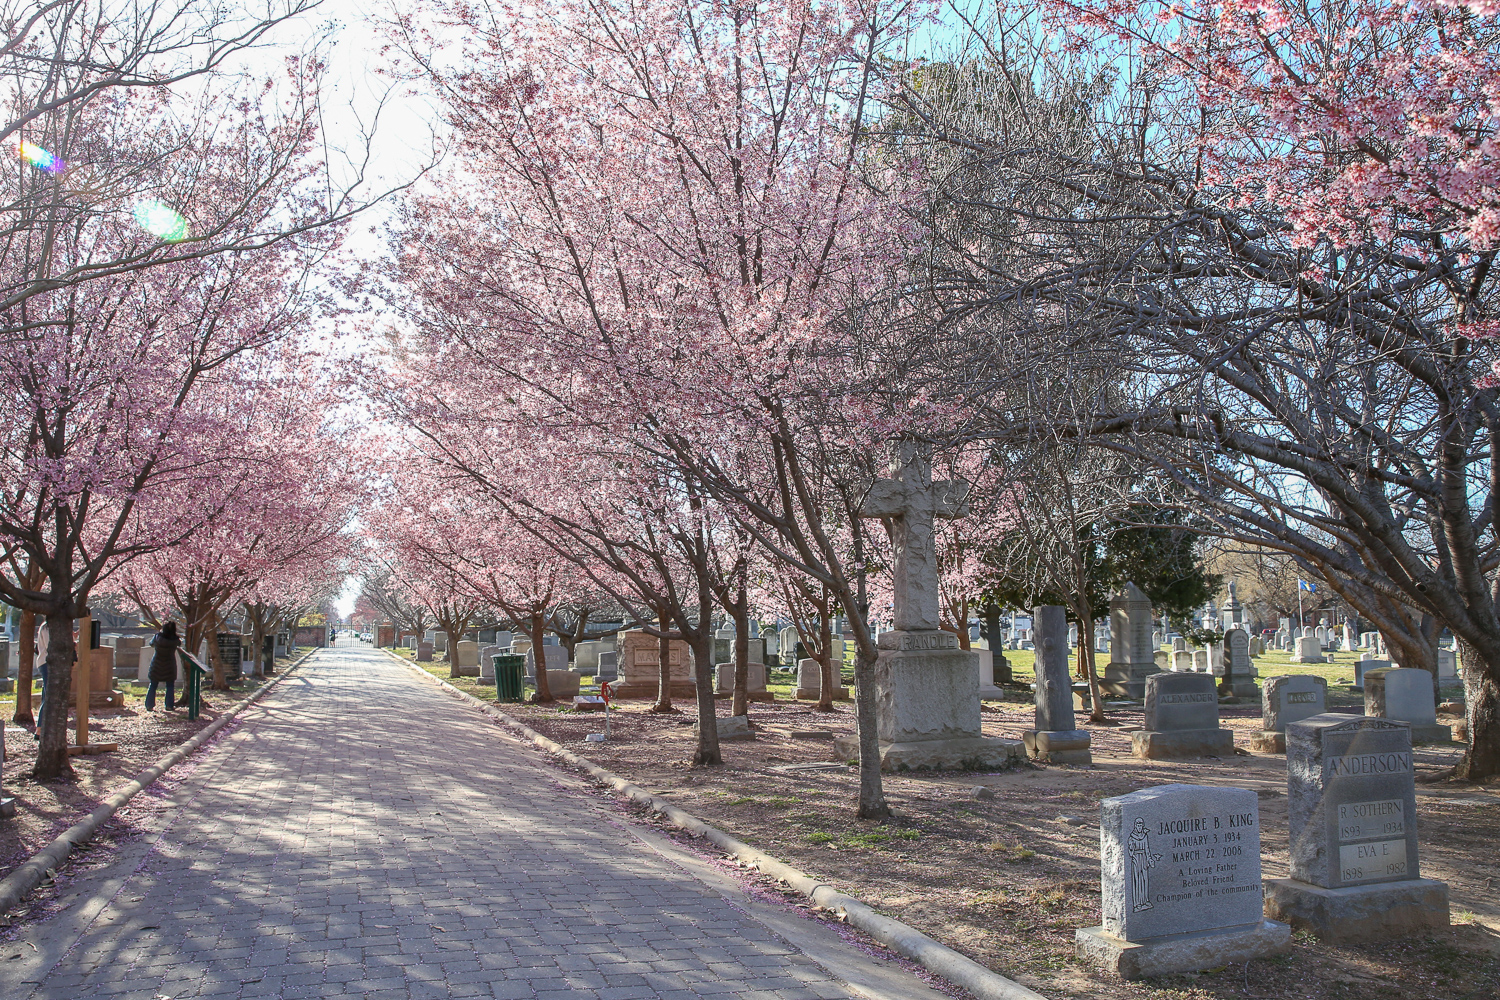 Congressional Cemetery is the final resting place of many of history's most famous figures. However, the fascinating stories don't end with well-known names. Here are some of the most interesting people you may not know about at Congressional Cemetery. (Amanda Andrade-Rhoades/DC Refined)